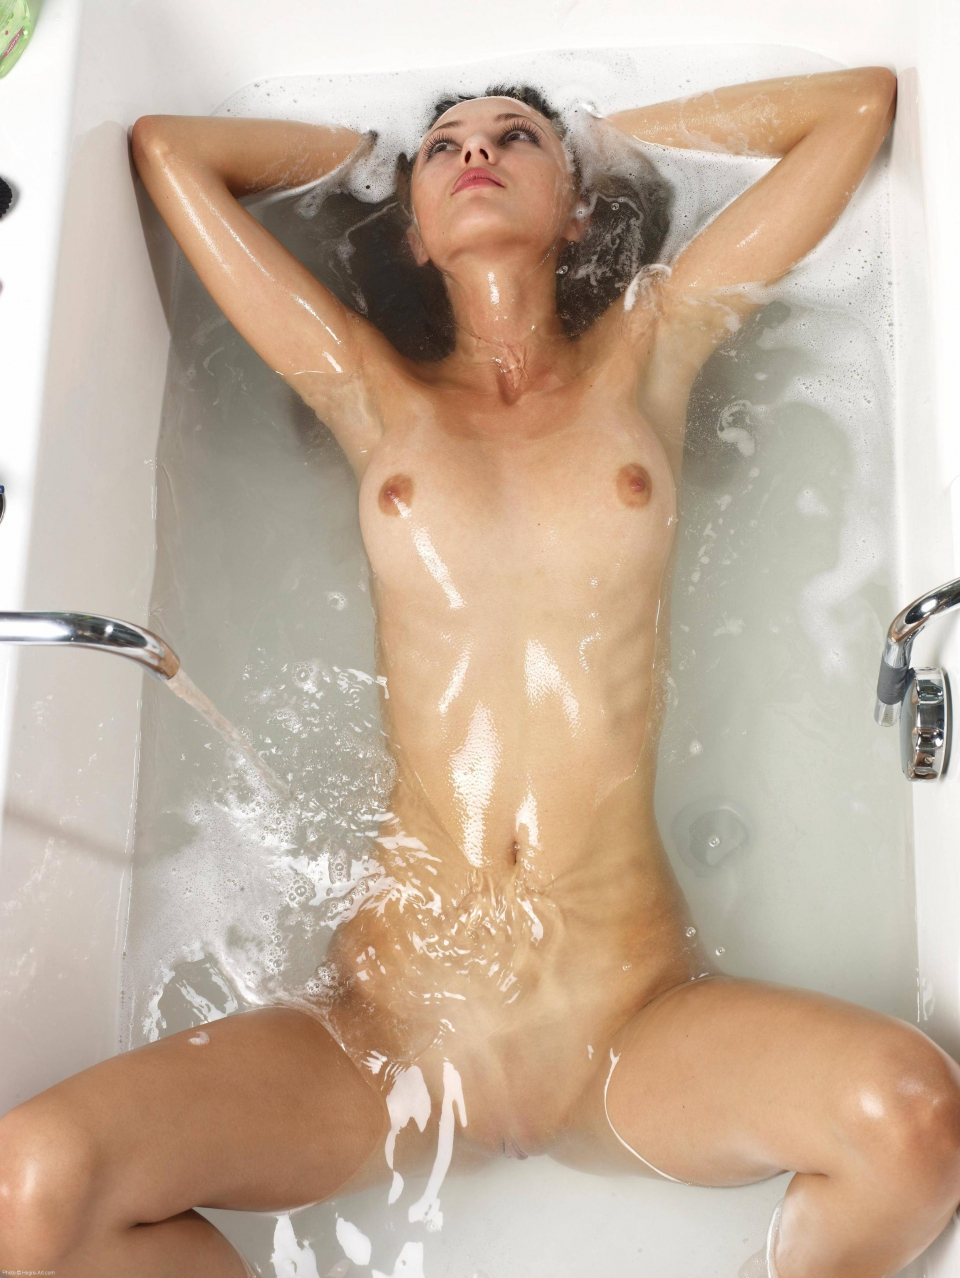 Naked girl in bath